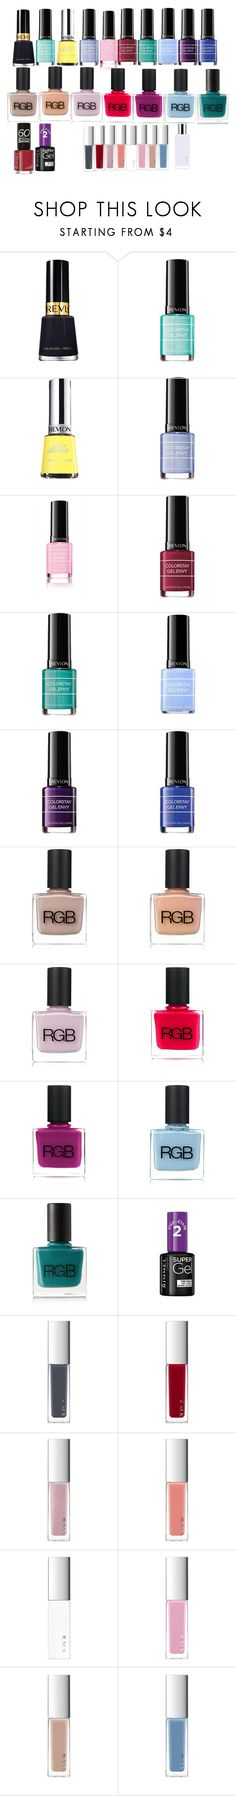 """revlon,rgb,rimmel,rmk"" by azra-99 on Polyvore featuring beauty, Revlon, RGB Cosmetics, RGB, Rimmel and RMK"